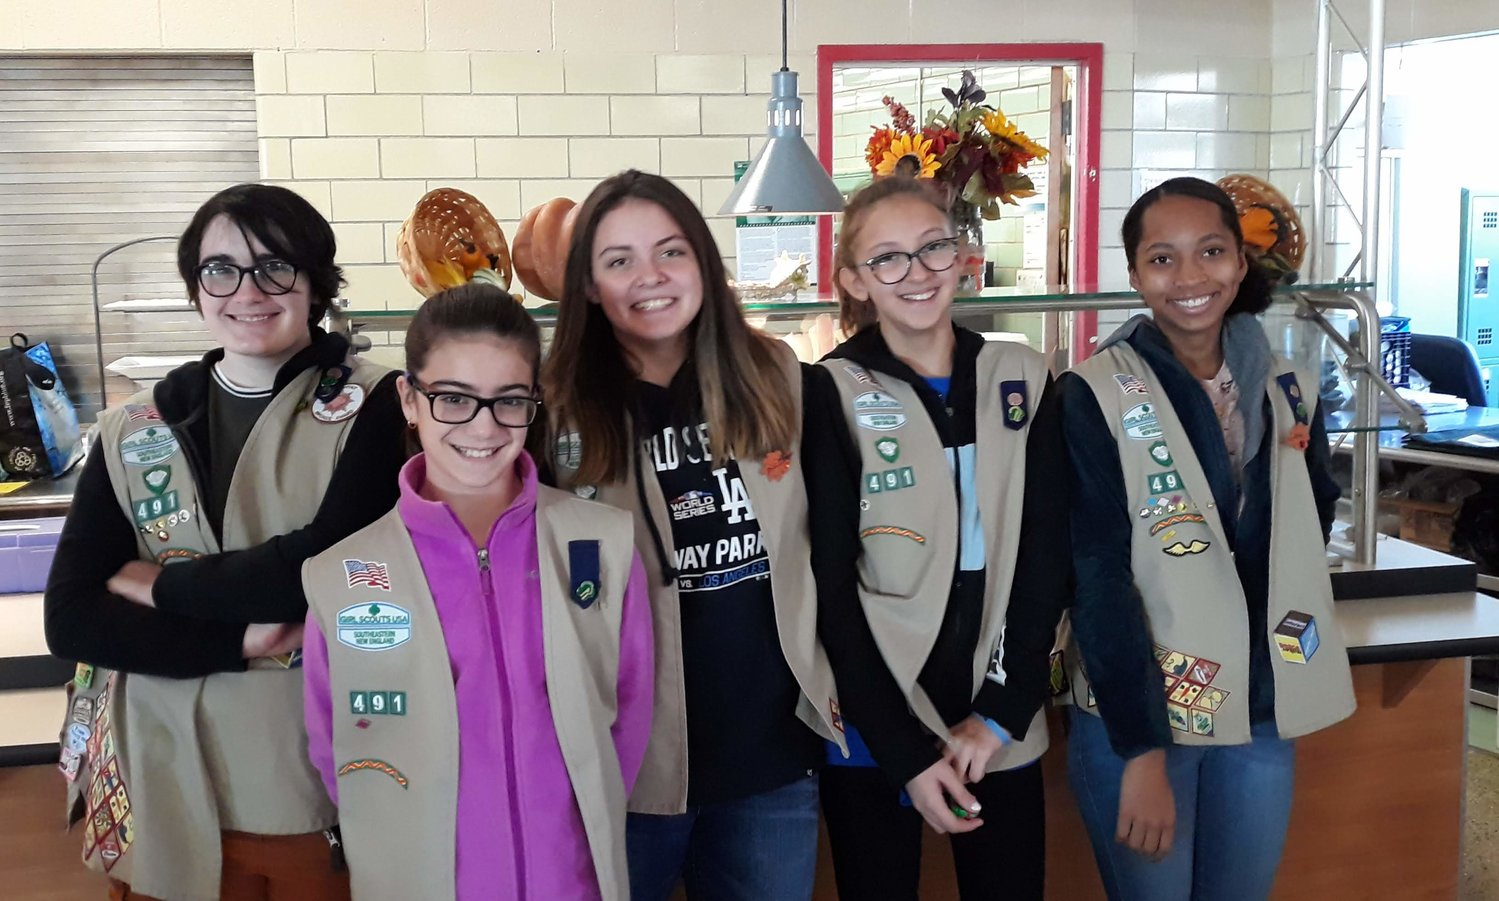 Members of East Providence Girl Scout Troop 491 (from left to right) Lily F, Katelyn D, Abby A, Avarie A, and Rylee J. are shown in front of the cafeteria counter of the East Providence High School where they served food to people who attended the Holiday Craft Fair .